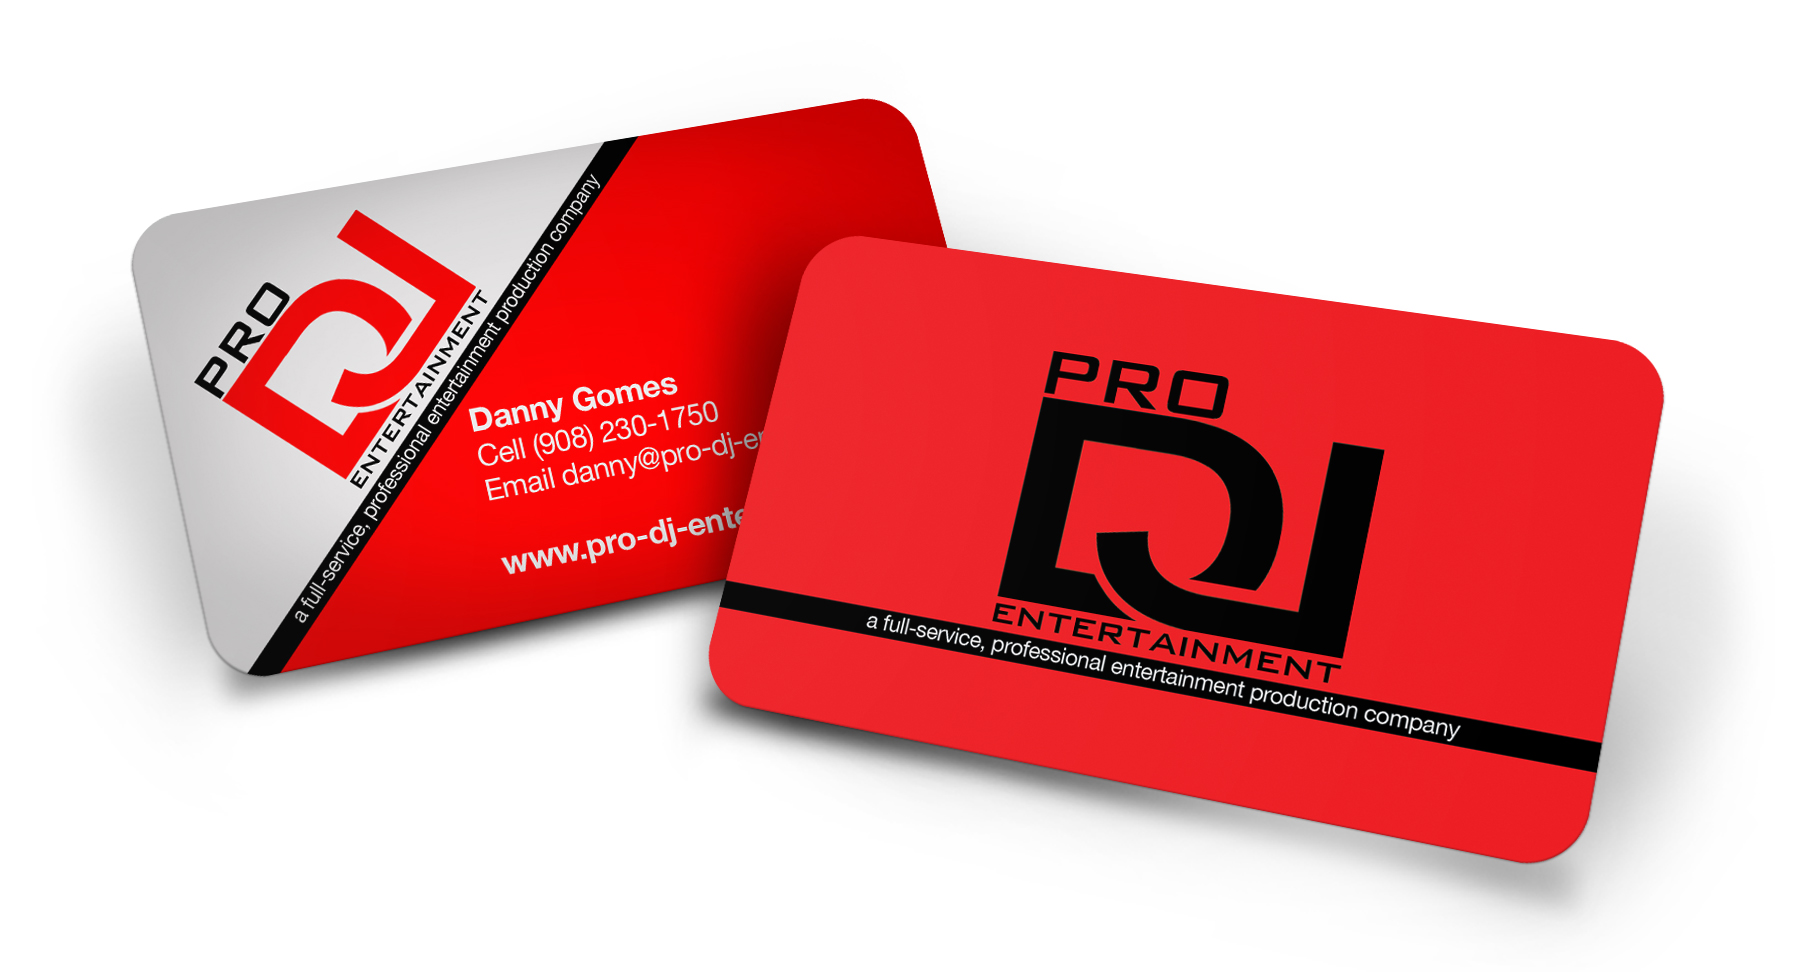 Dj Service Business Cards Gallery - Card Design And Card Template